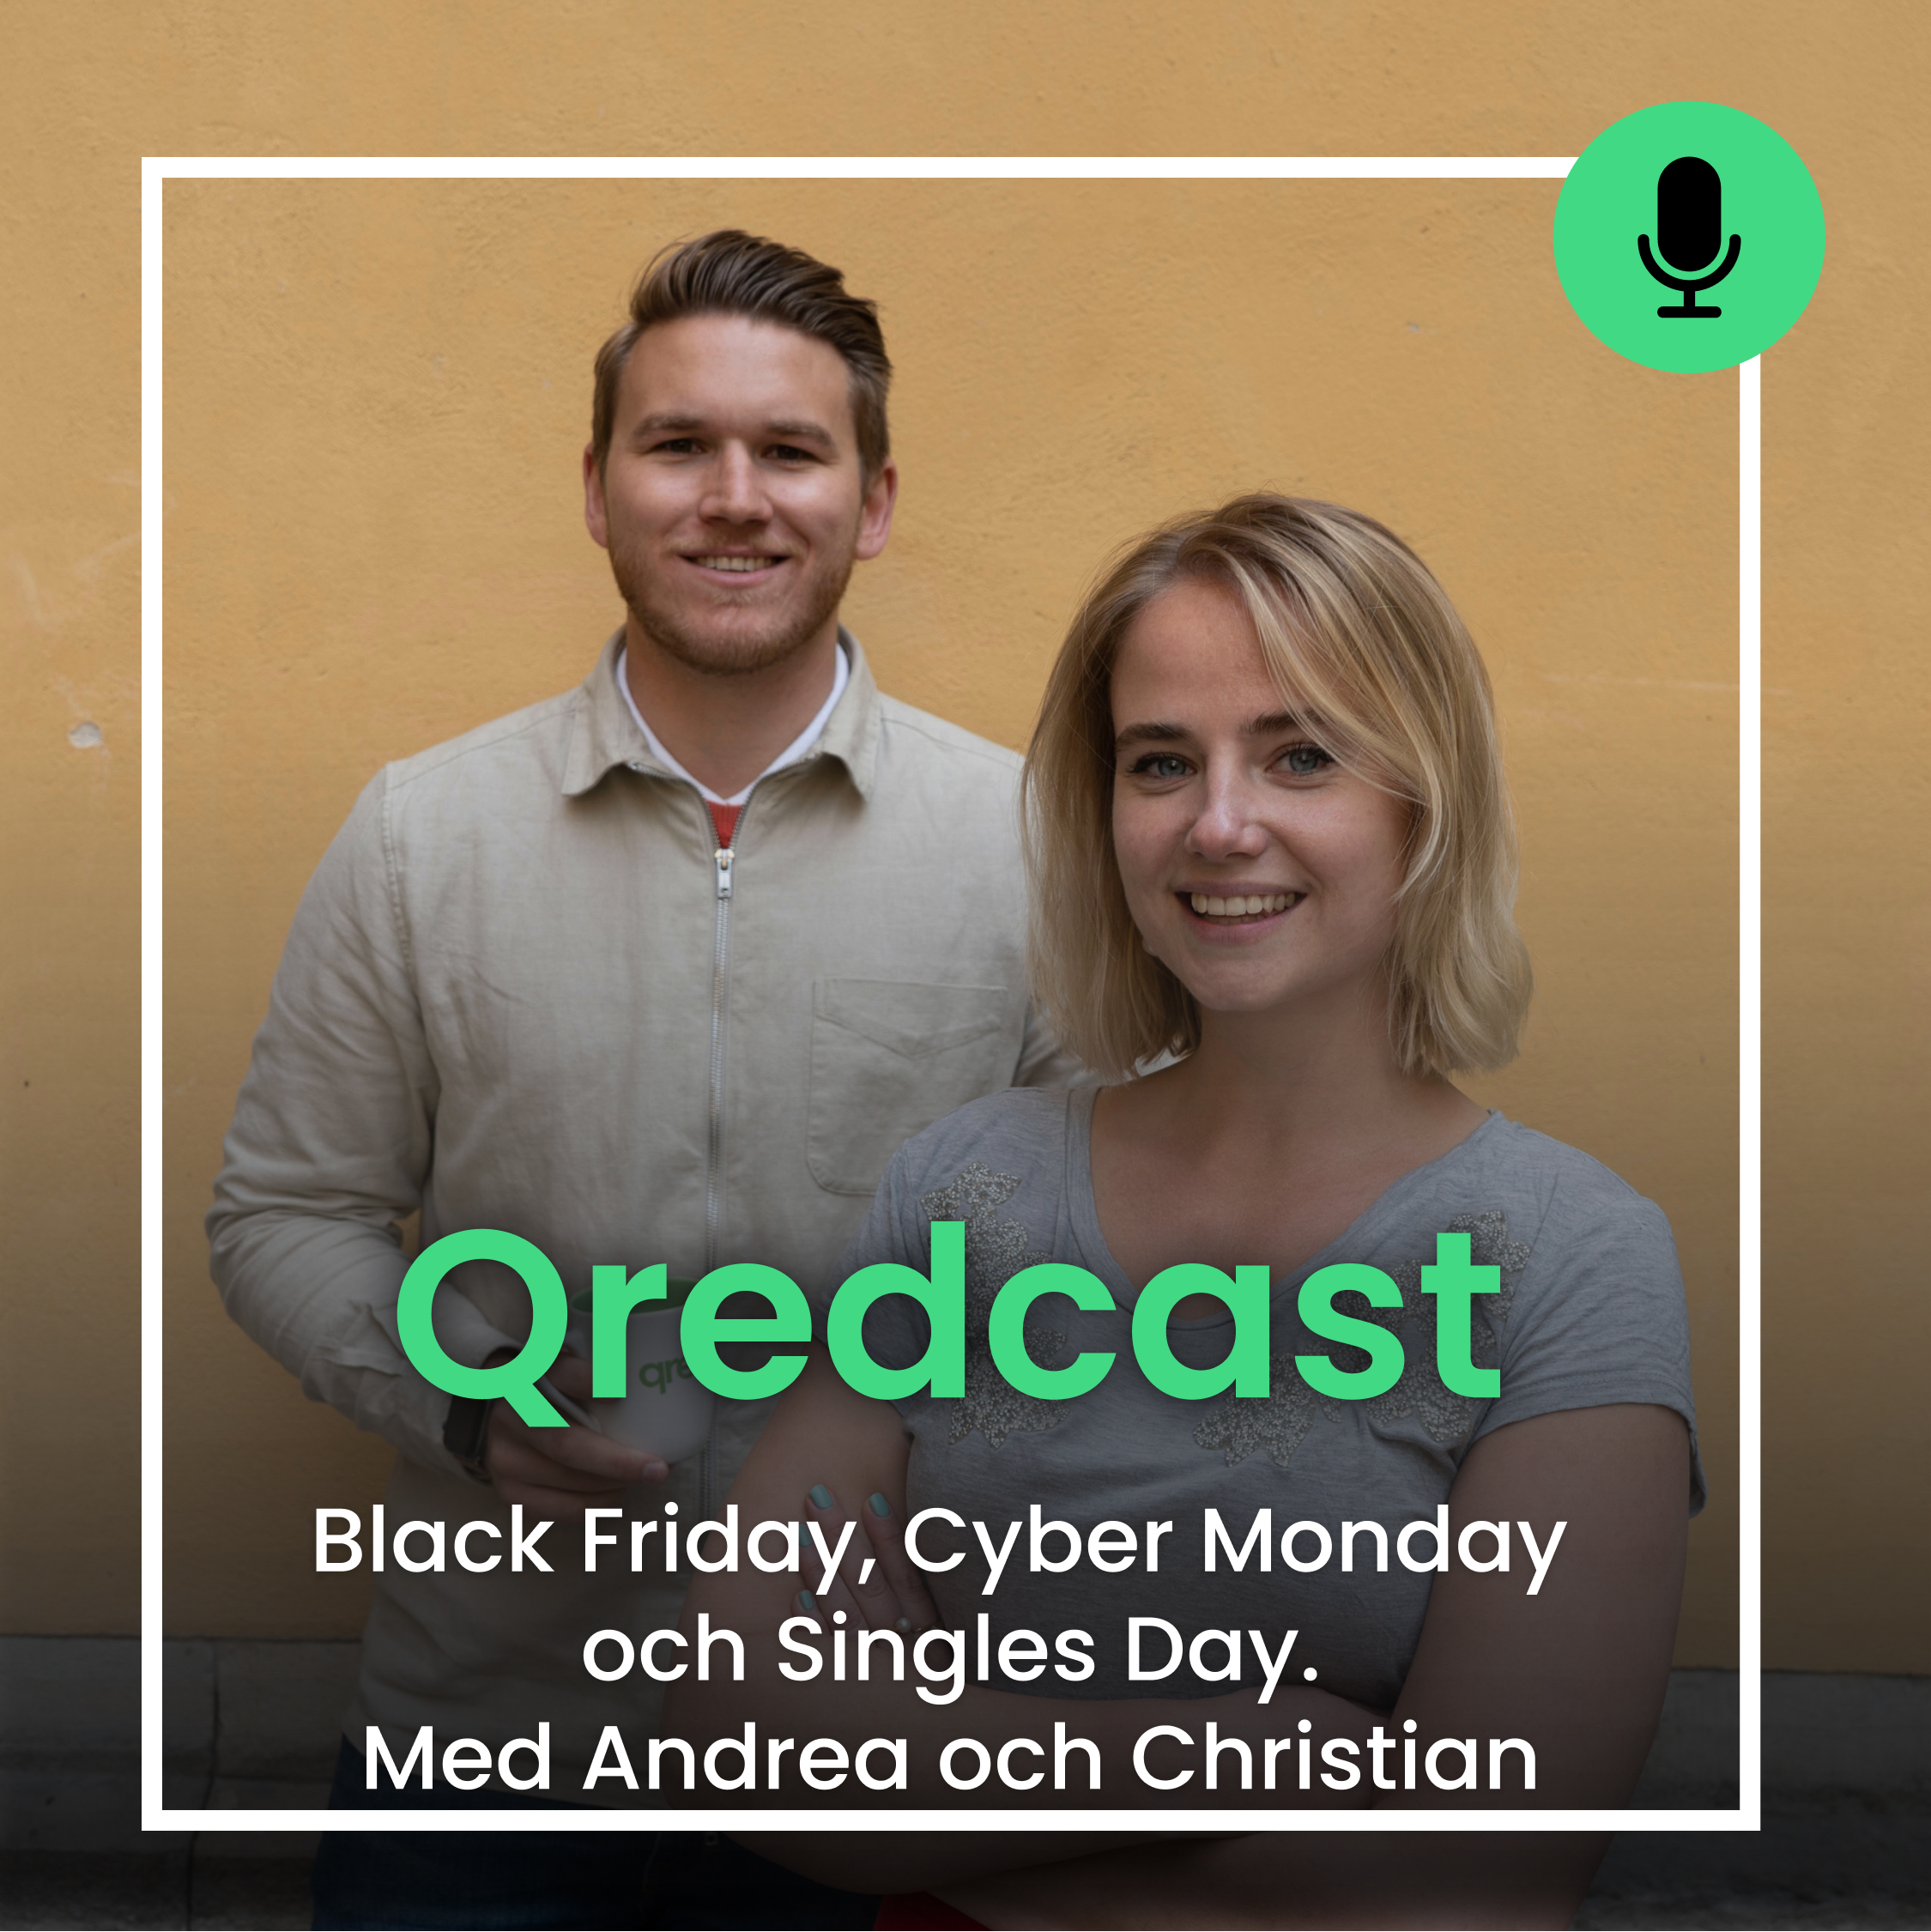 Black Friday Cyber Monday Singles Day Qredcast Podcast Christian och Andrea